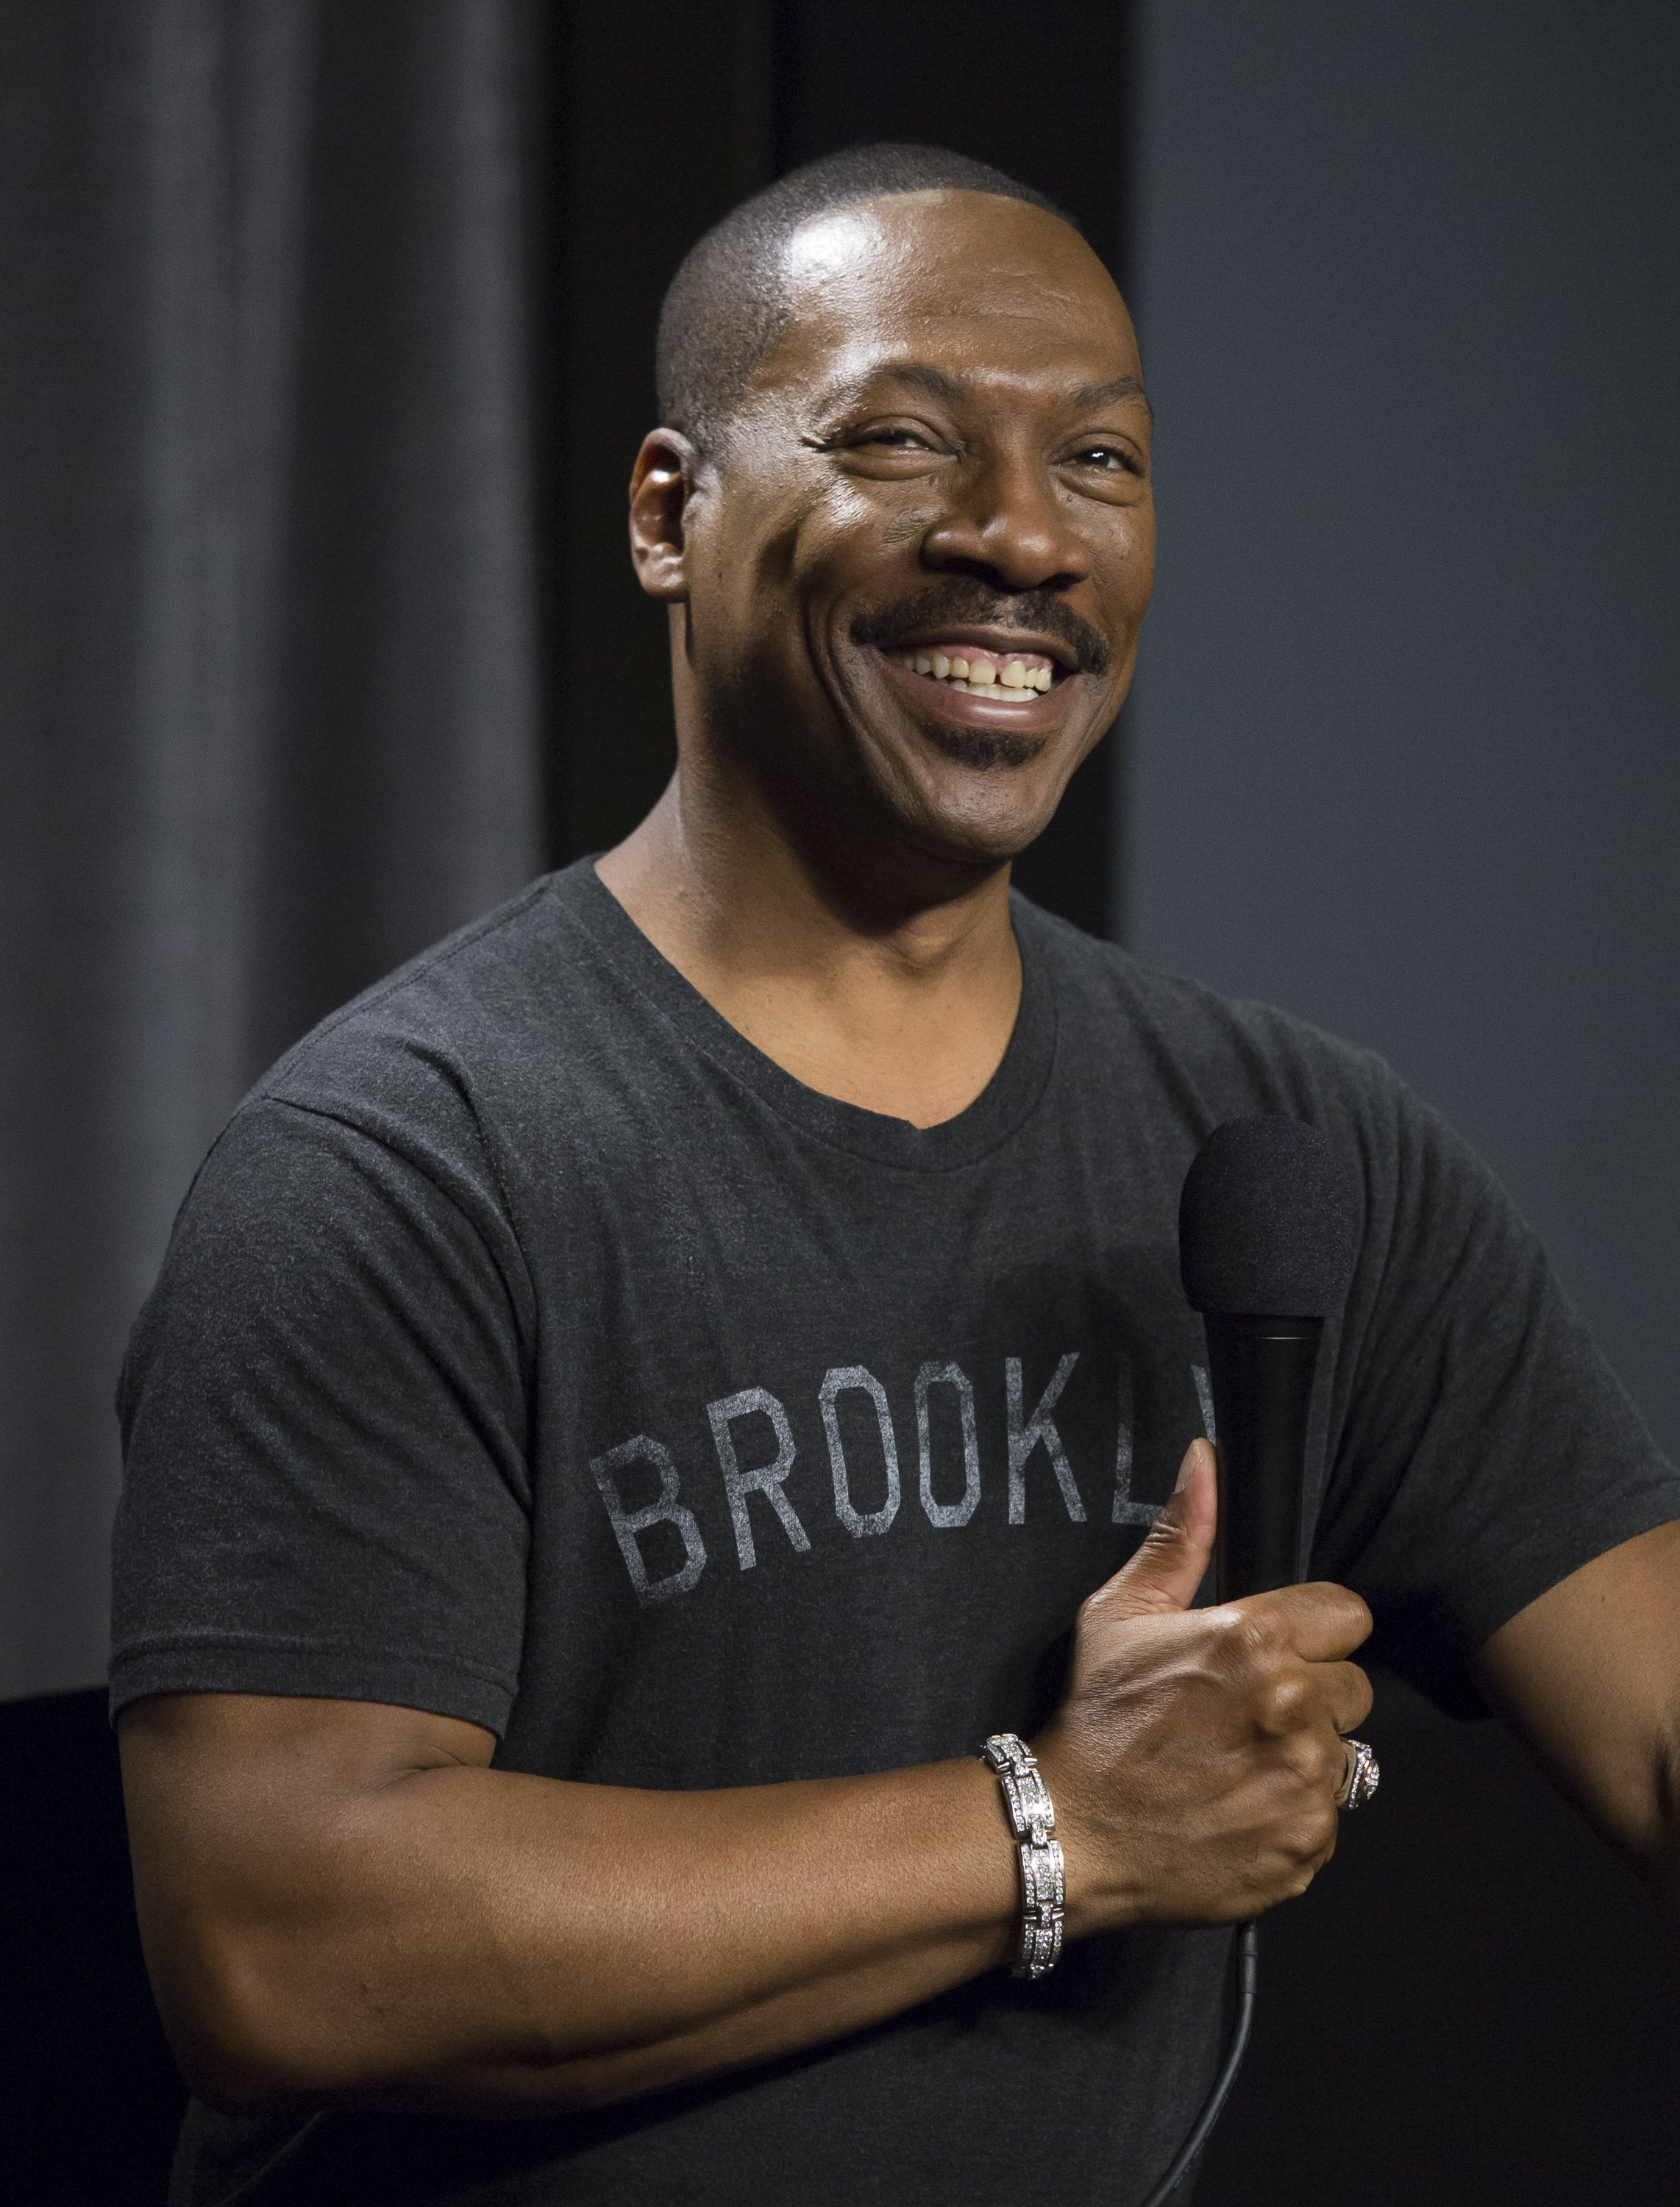 """Eddie Murphy at SAG-AFTRA Foundation's Conversations with """"Mr. Church"""" at SAG Foundation Actors Center on November 15, 2016 in Los Angeles, California 